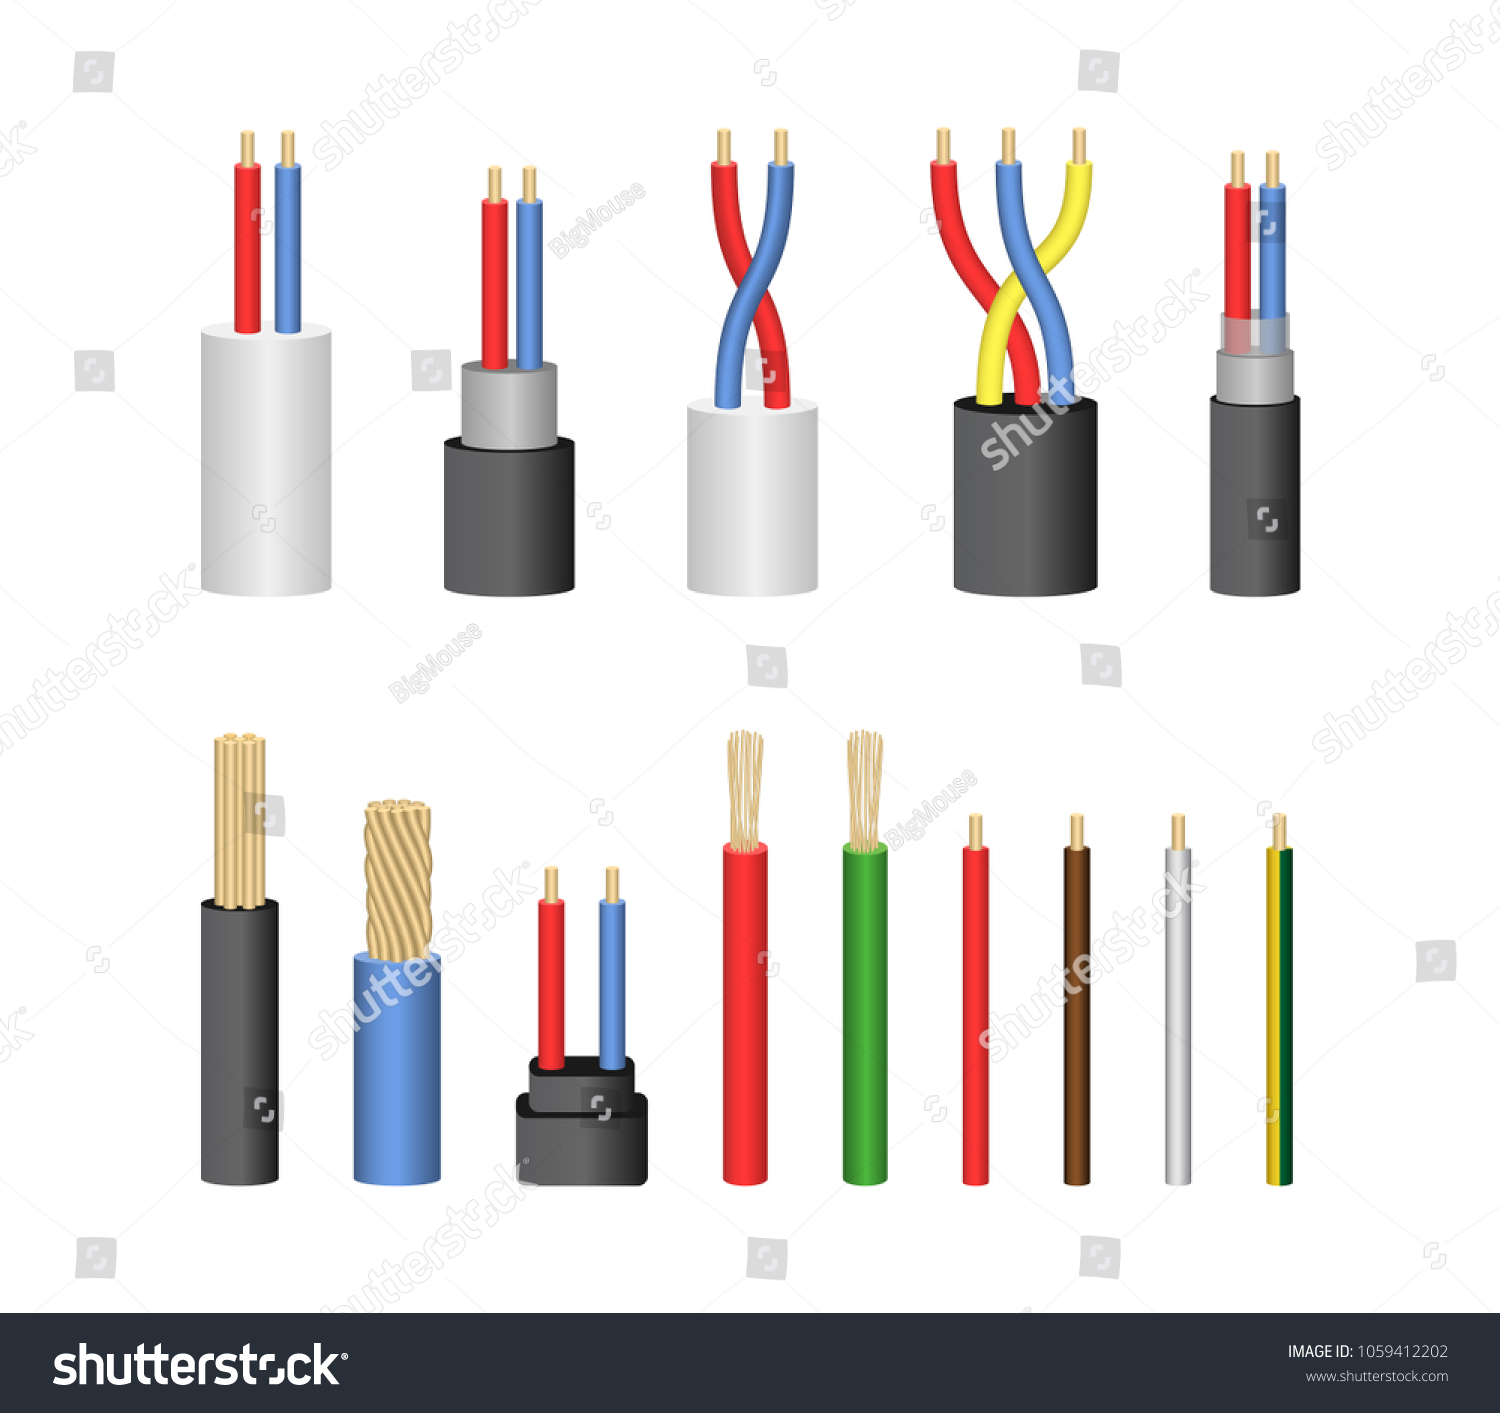 Amazing Different Types Of Power Cables Pictures Inspiration - The ...